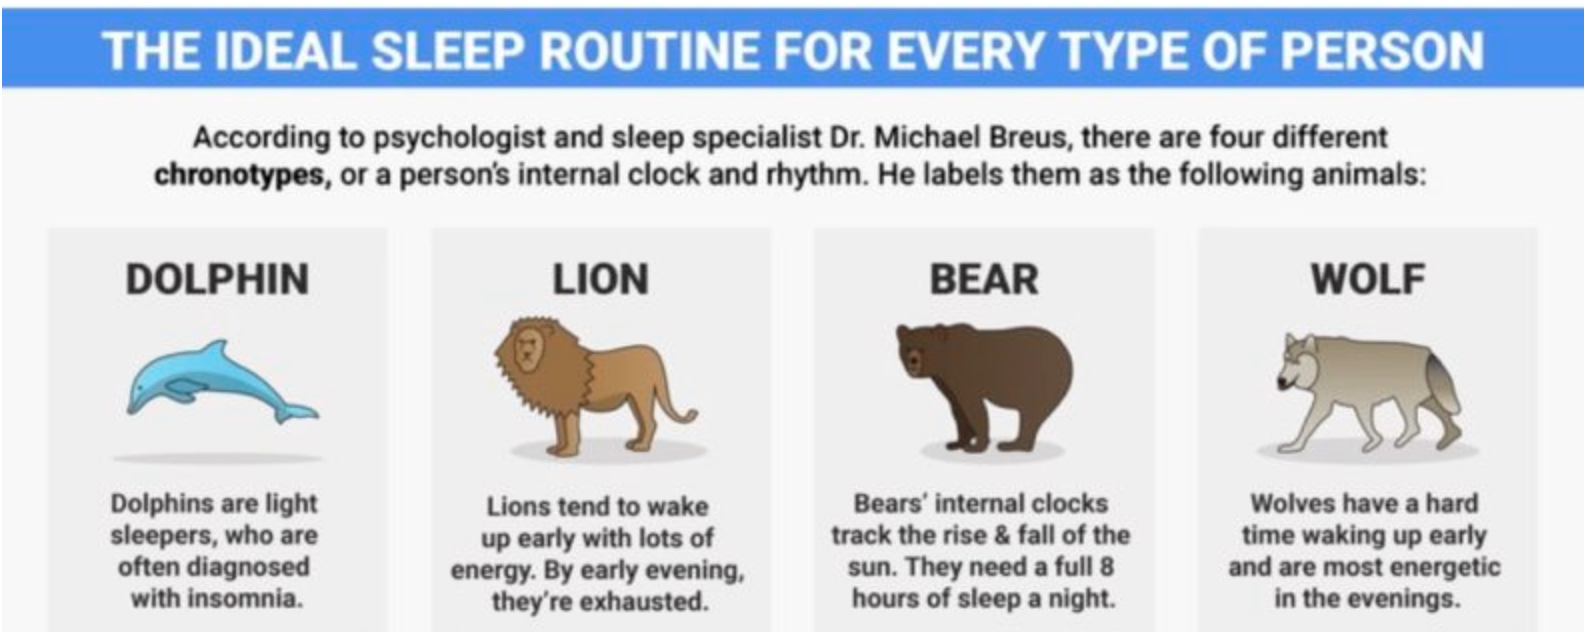 The Ideal Sleep Routine For Every Type Of Person